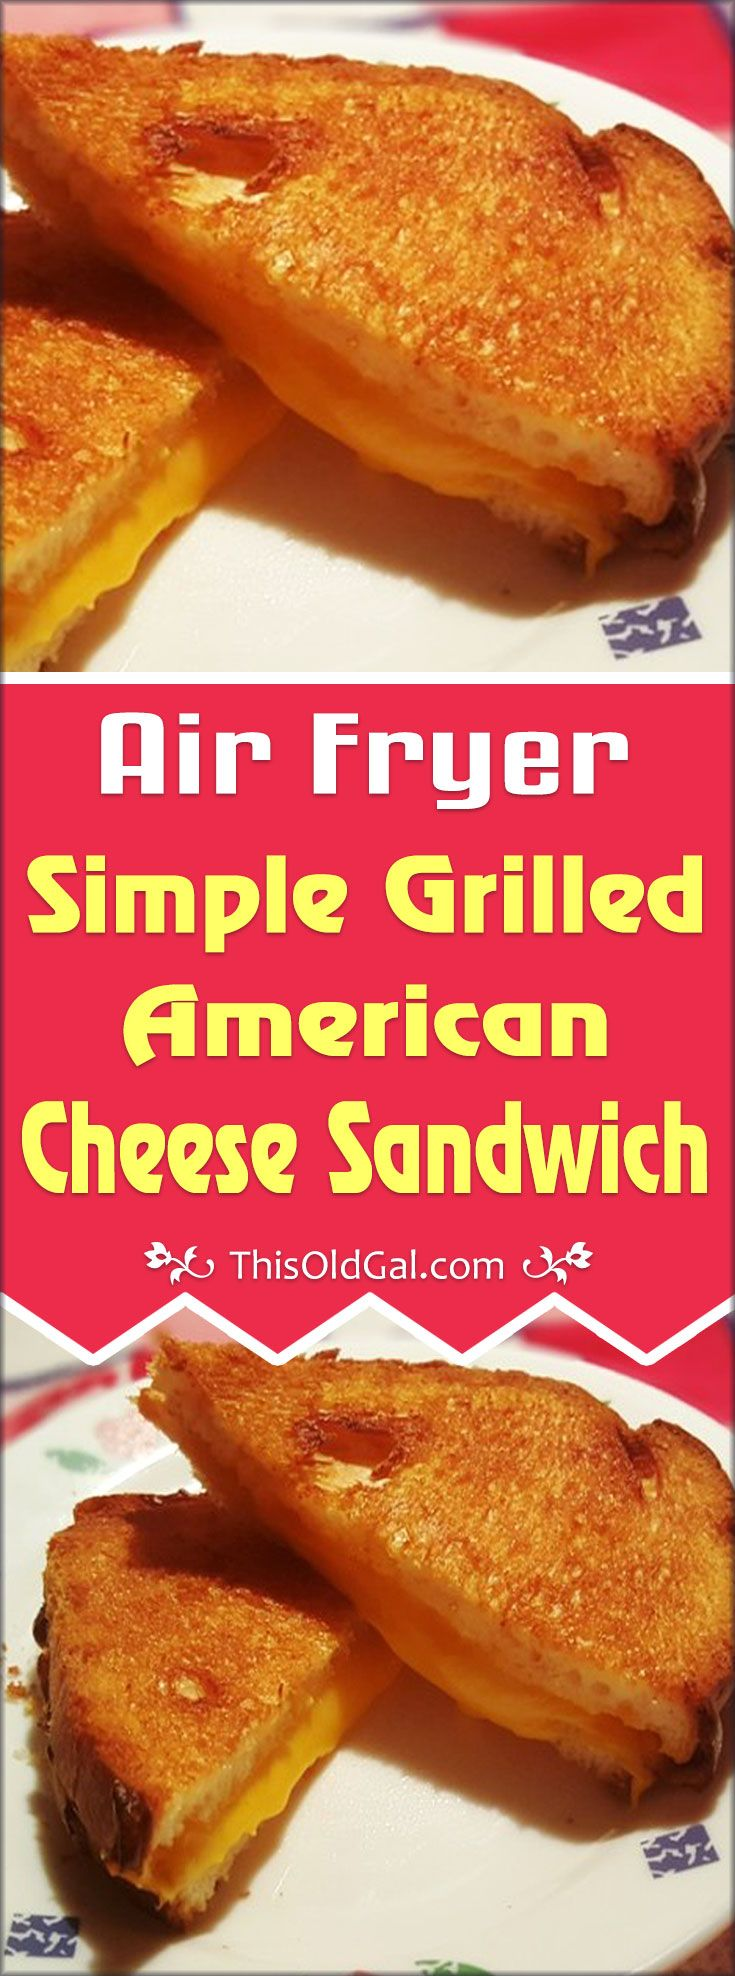 Air Fryer Simple Grilled American Cheese Sandwich is easy